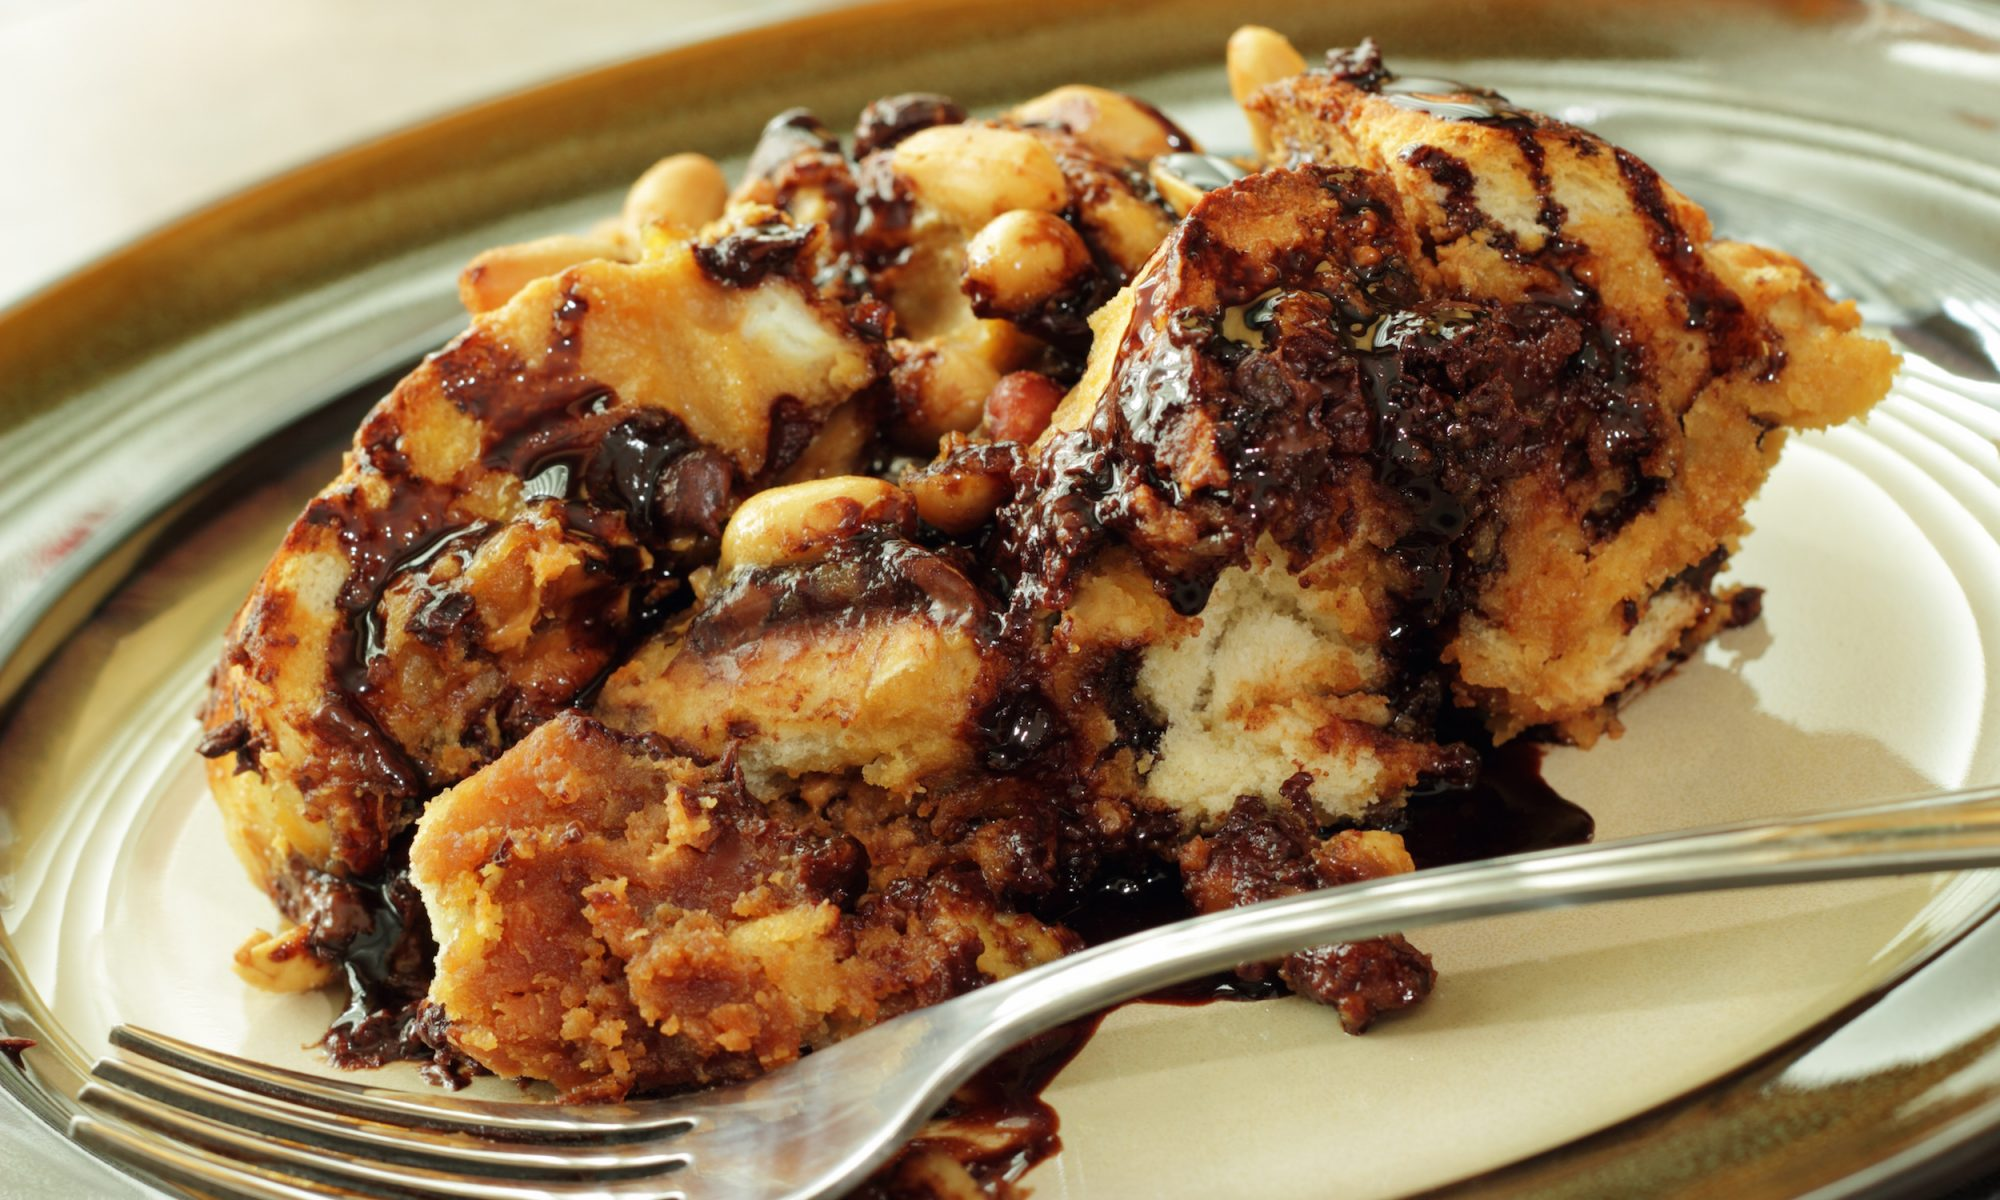 Chocolate Babka Makes the Best Bread Pudding